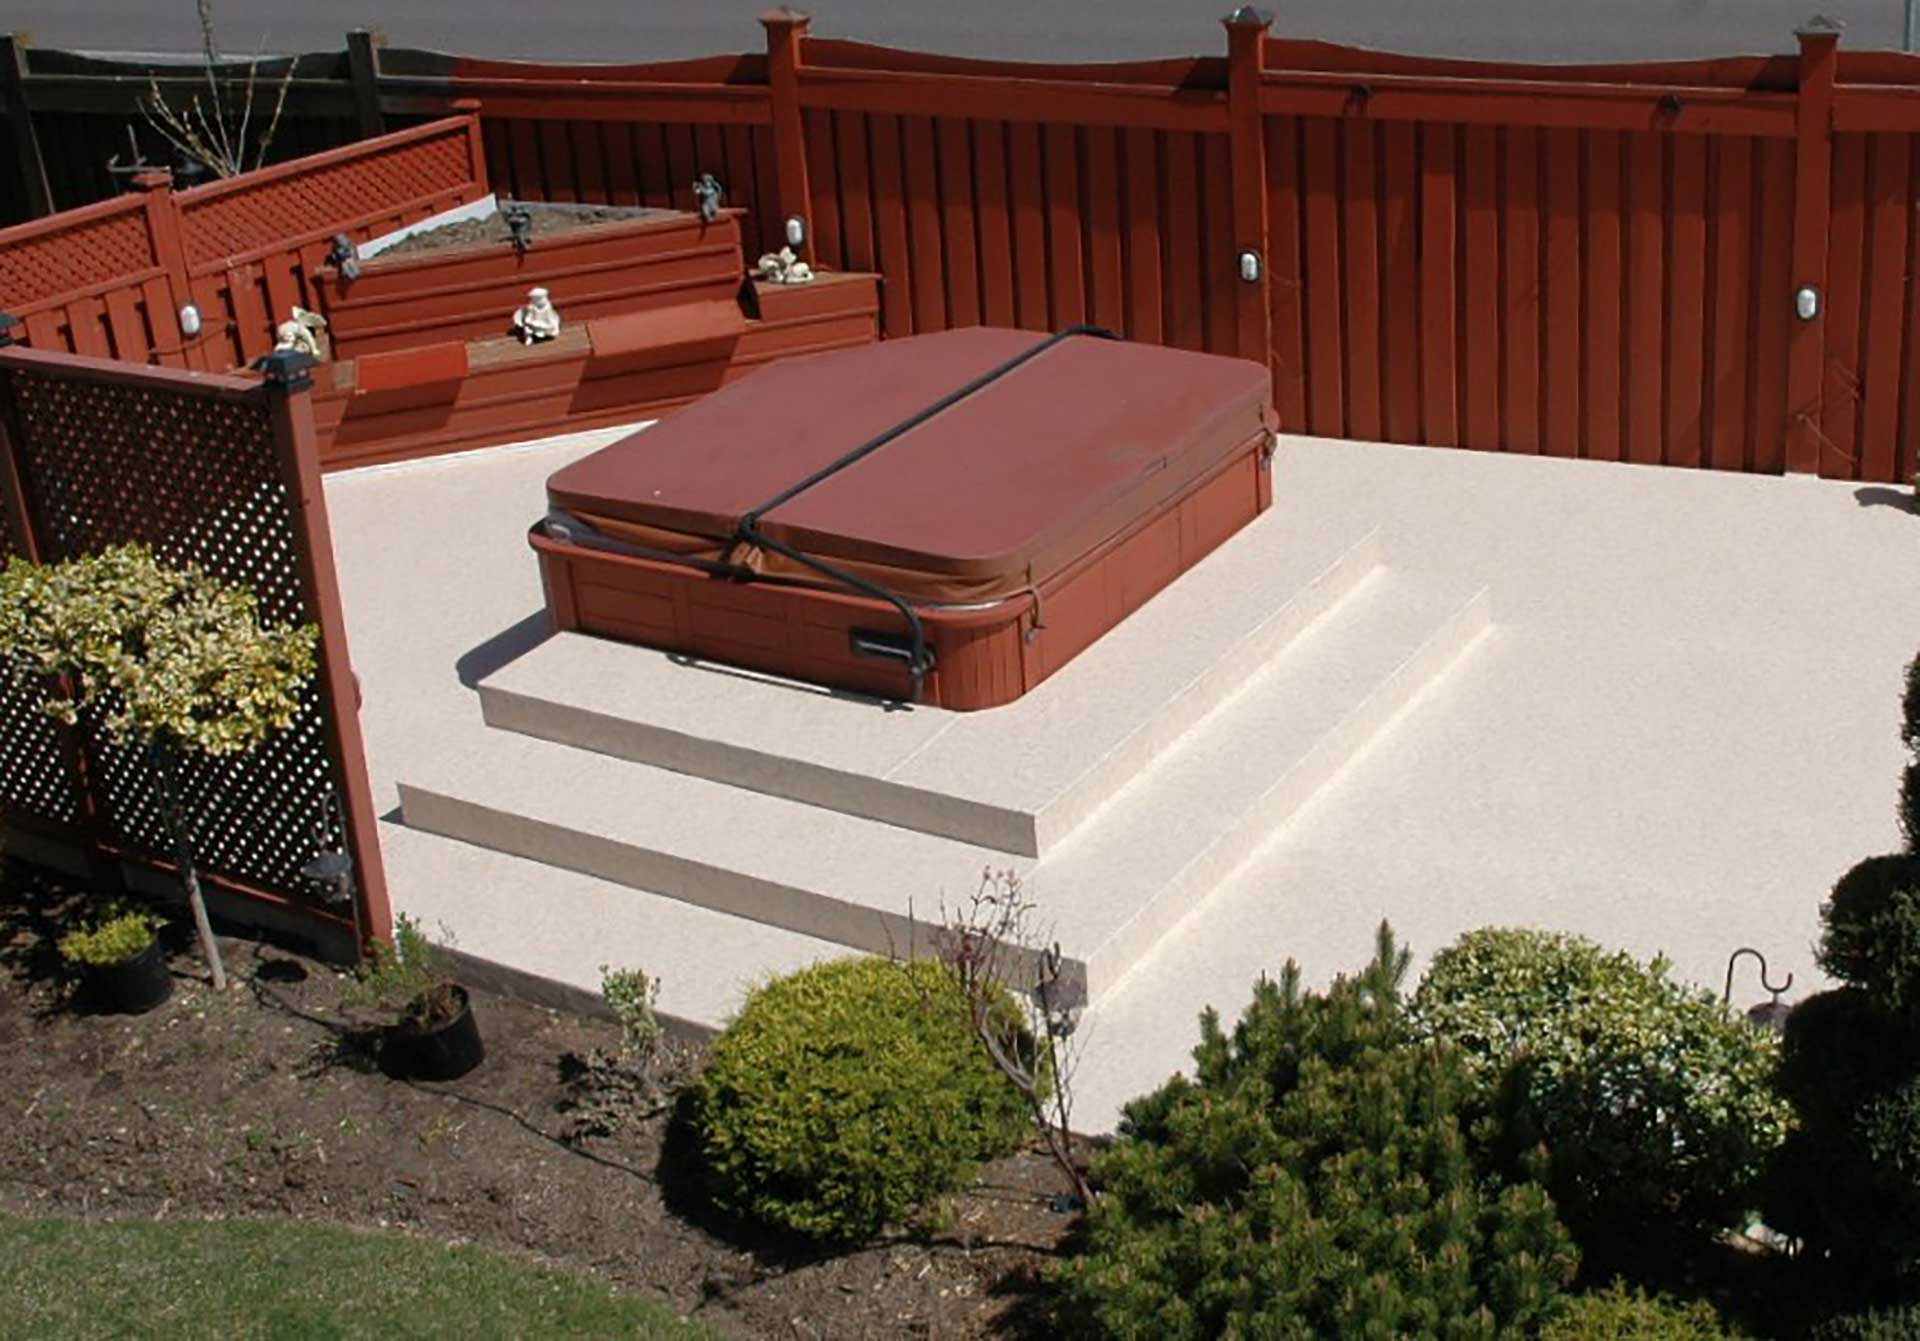 gallery hottub surrounds duradek deck hot tubs vinyl with images tub pool decking